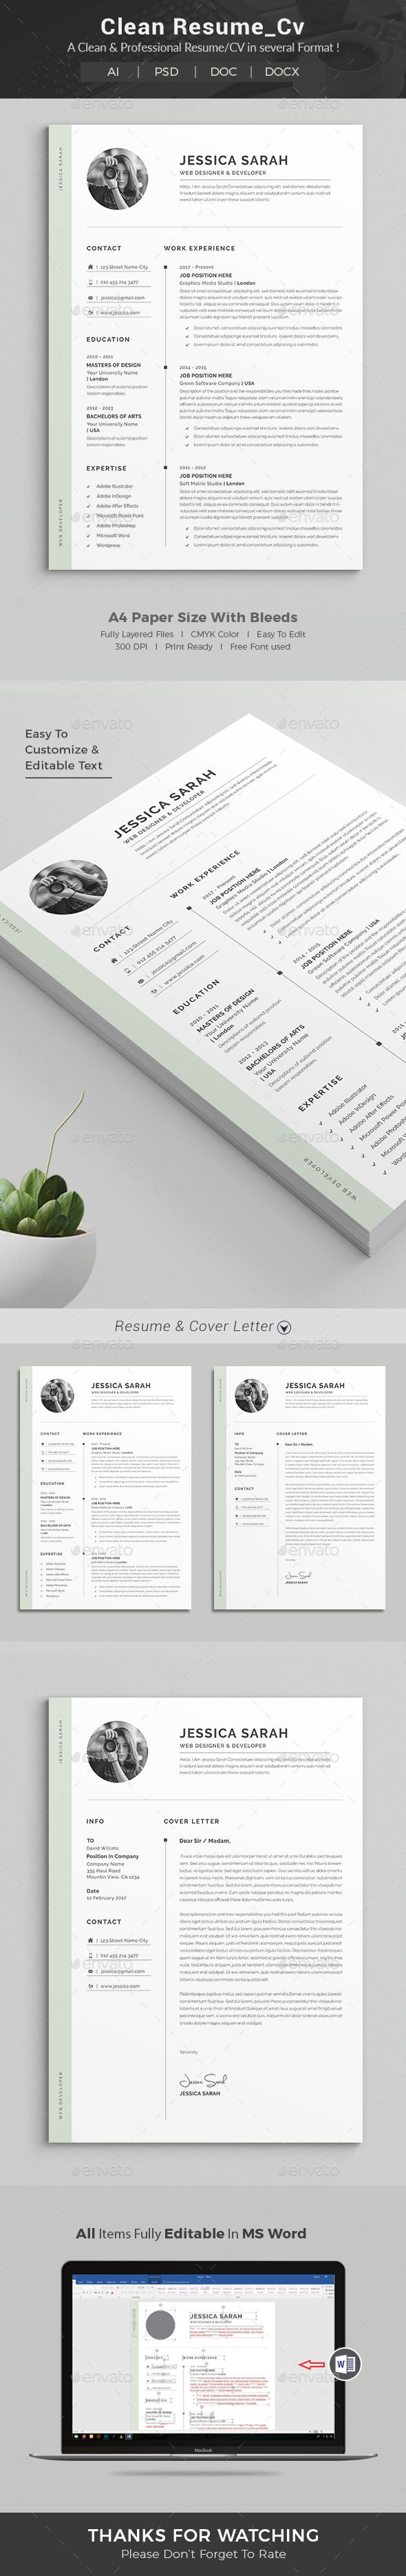 How To Create Resume In Word Delectable Resume  Template Creative Resume Templates And Design Resume